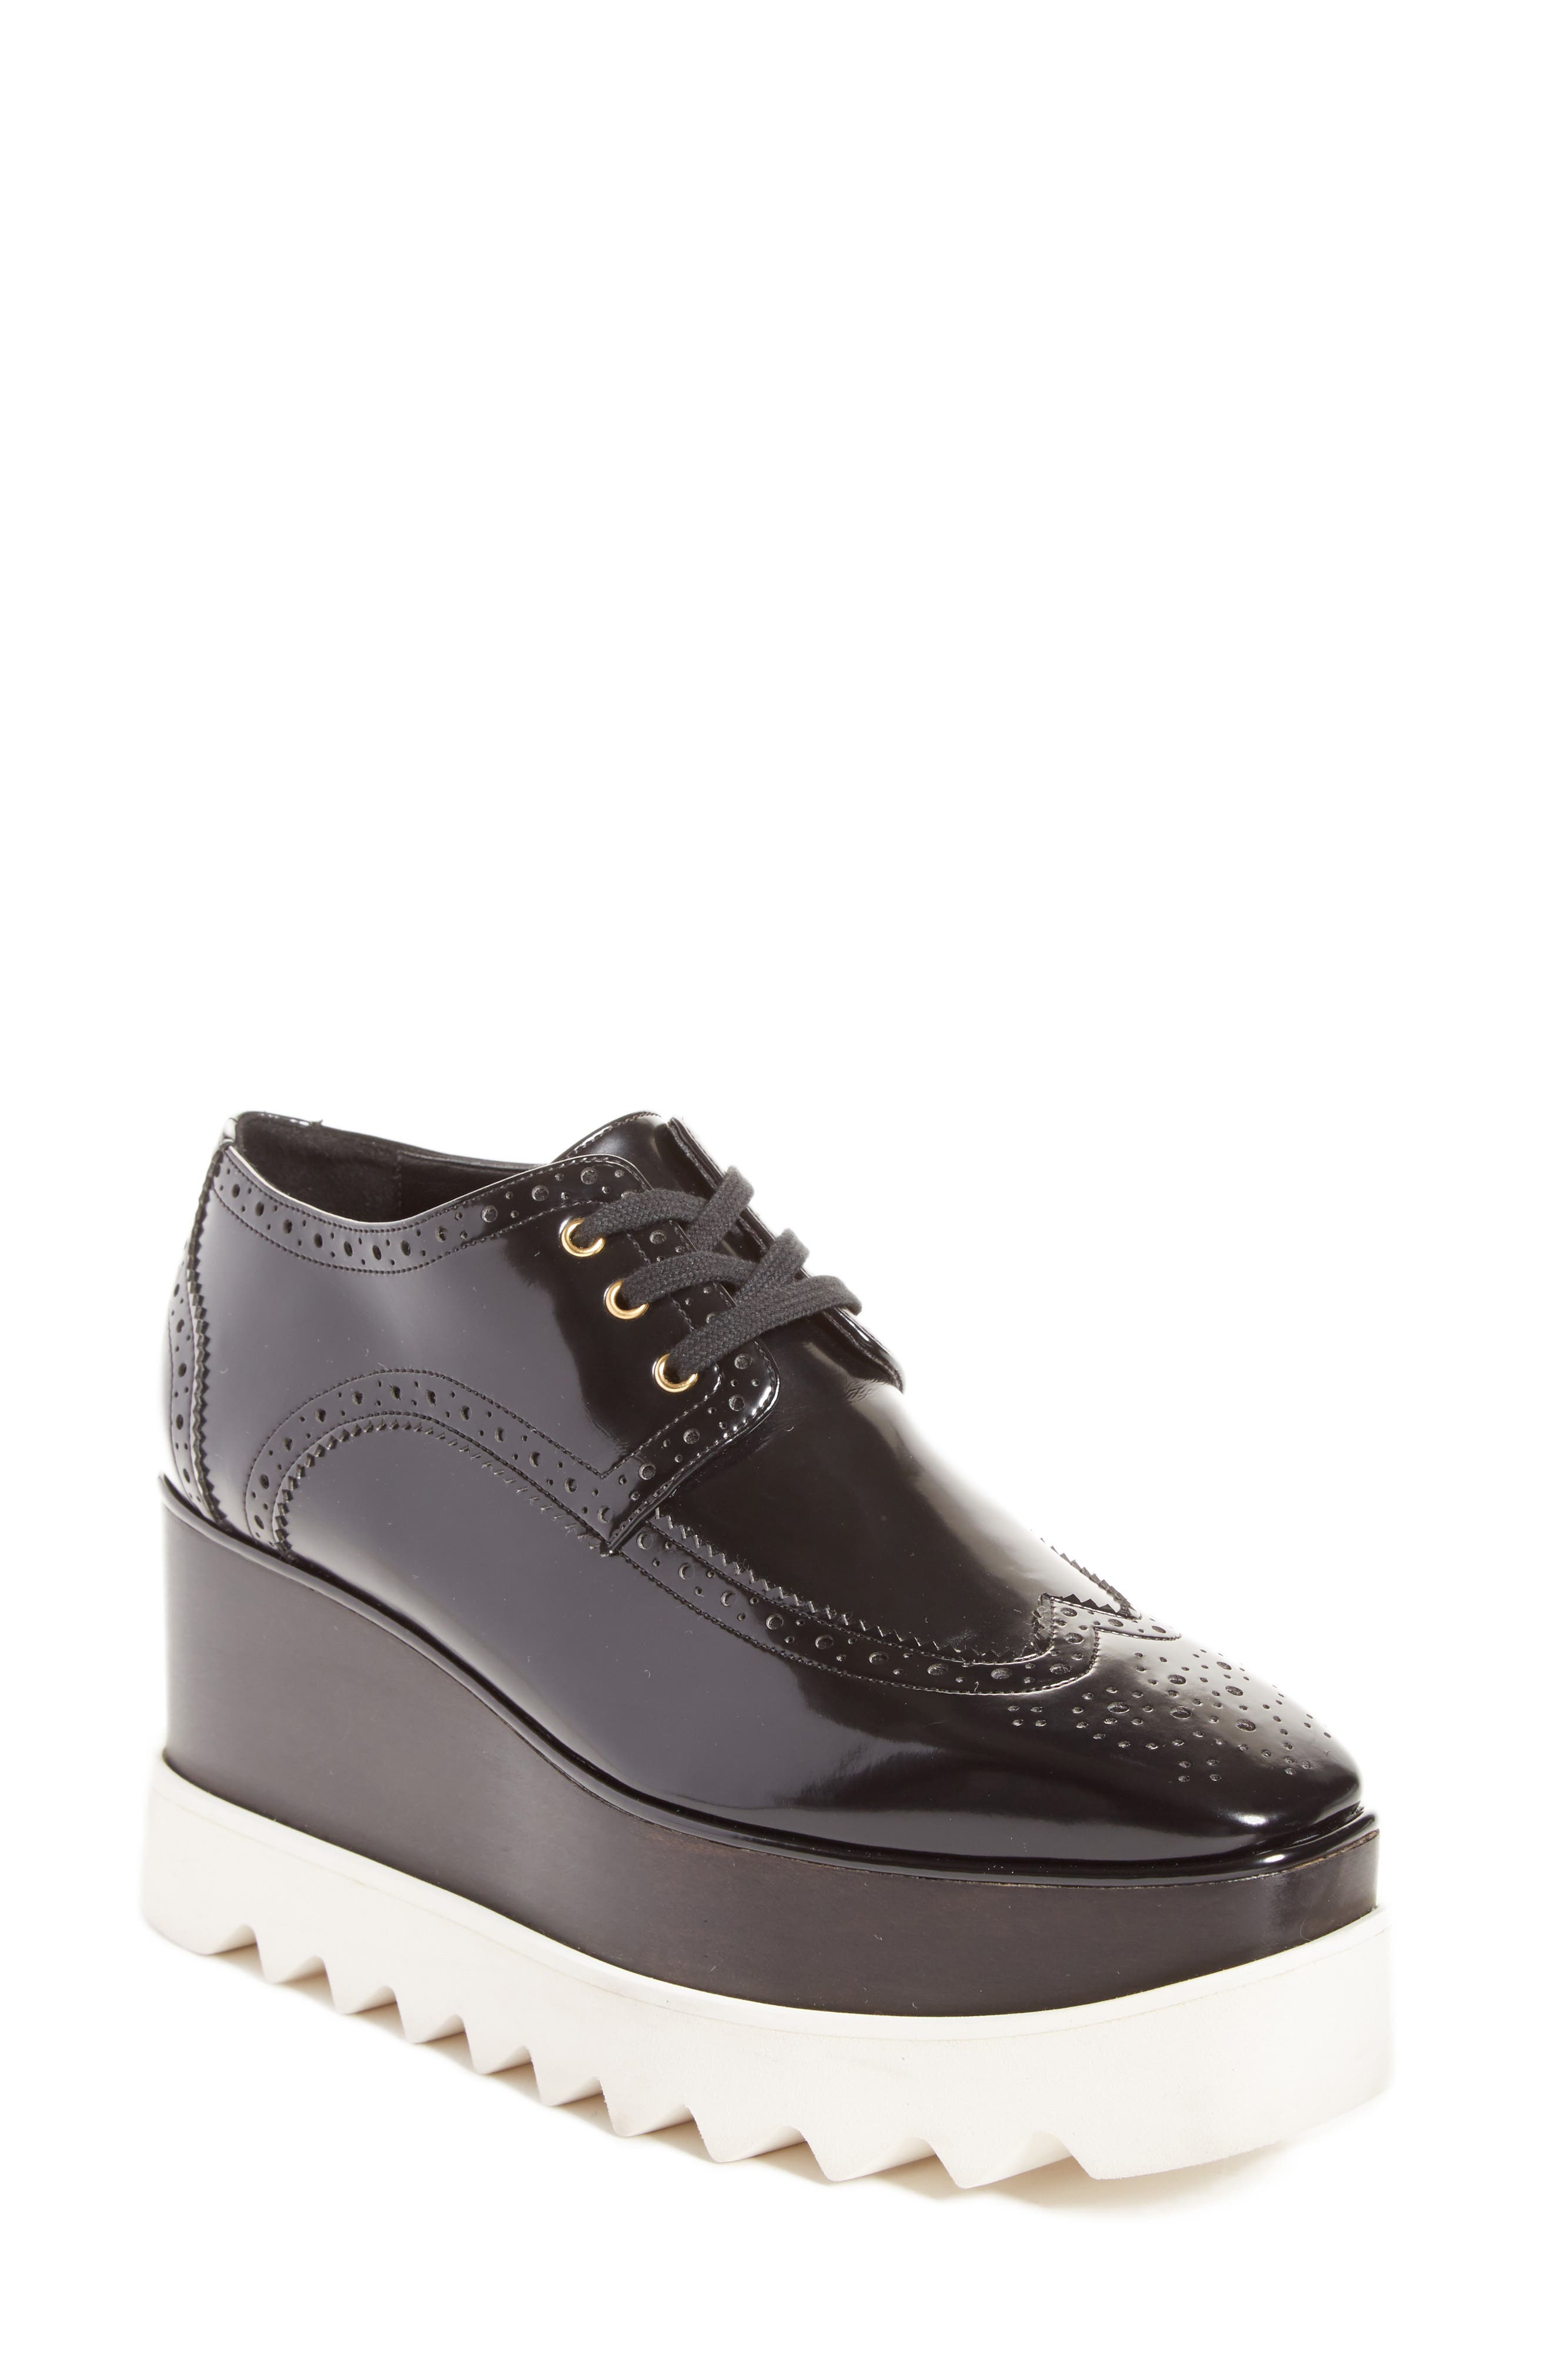 Main Image - Stella McCartney Elyse Brogue Platform Loafer (Women)